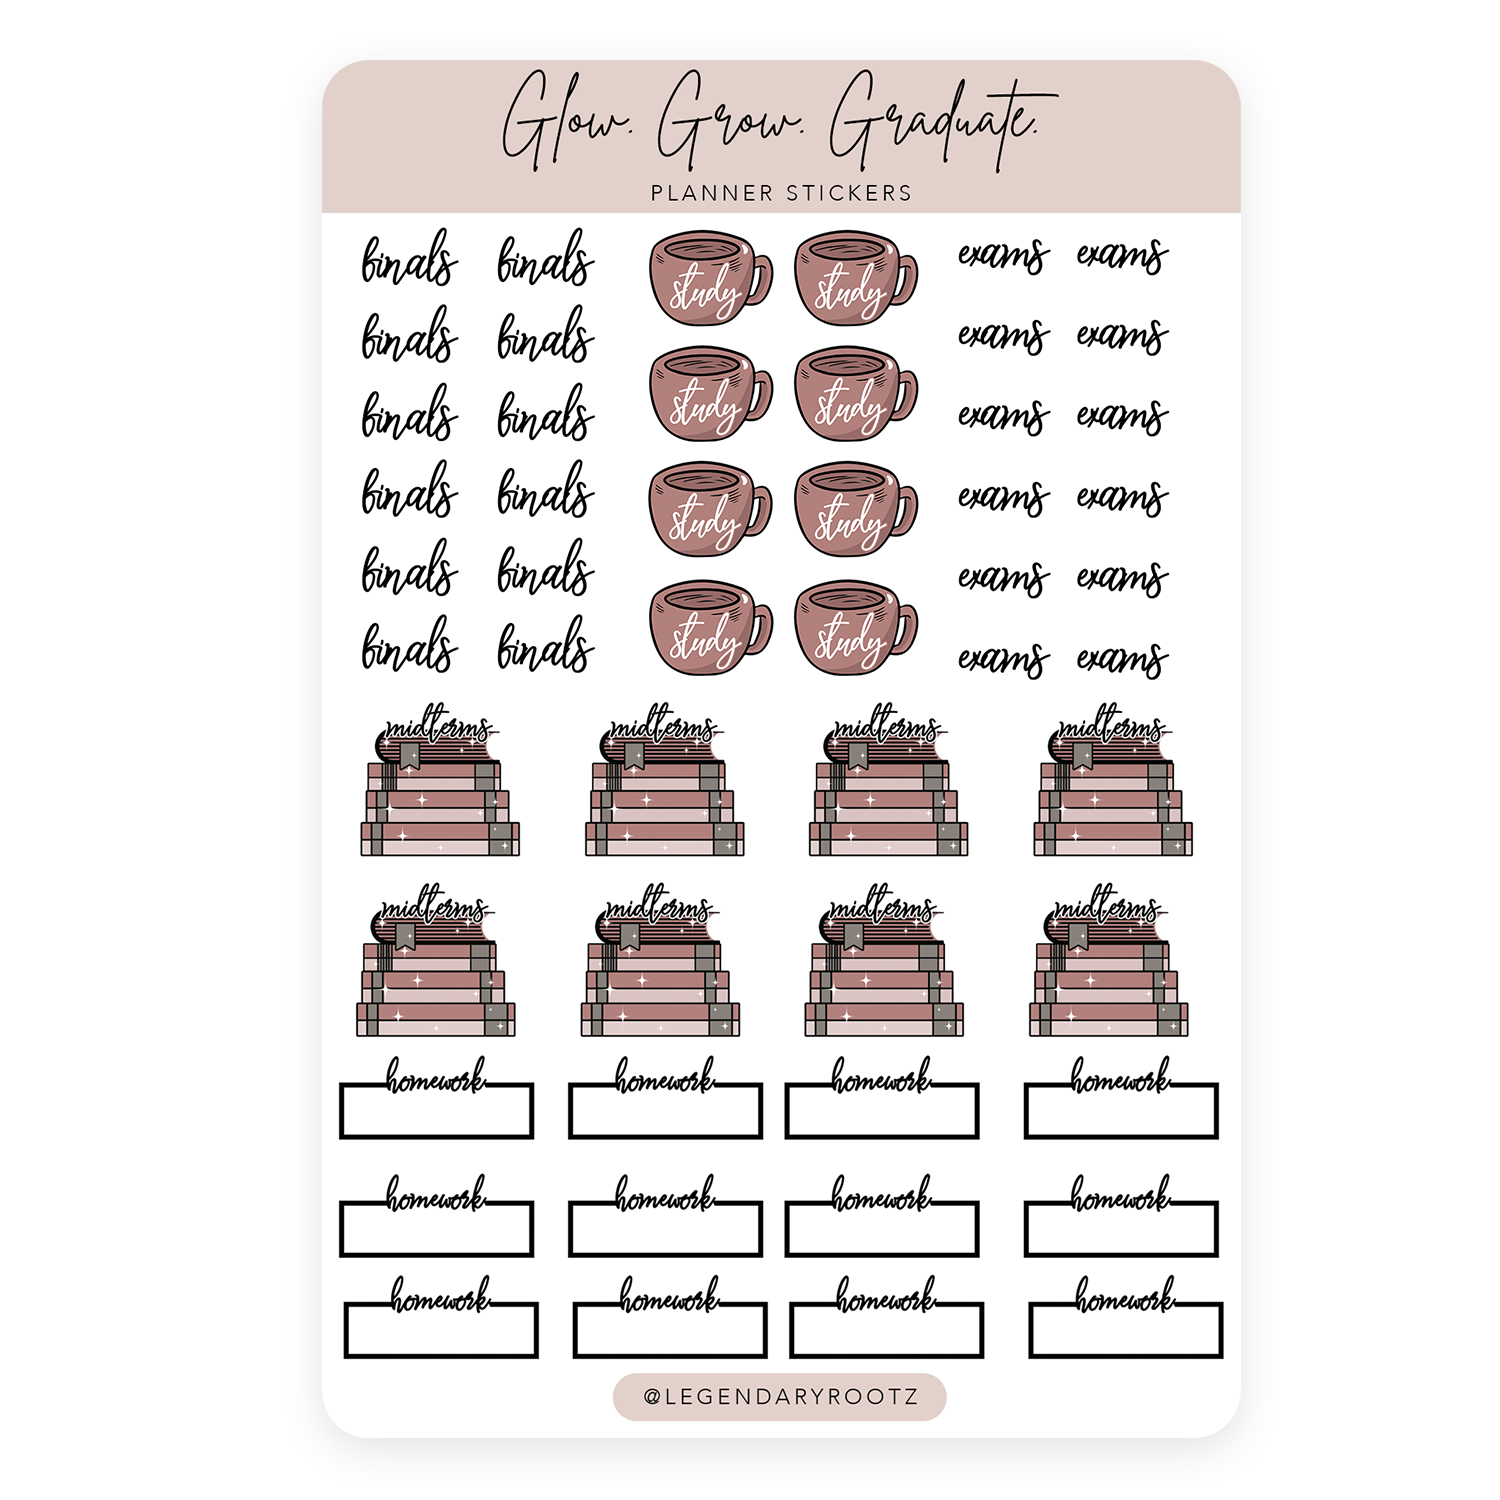 Glow Grow Graduate Sticker Sheet